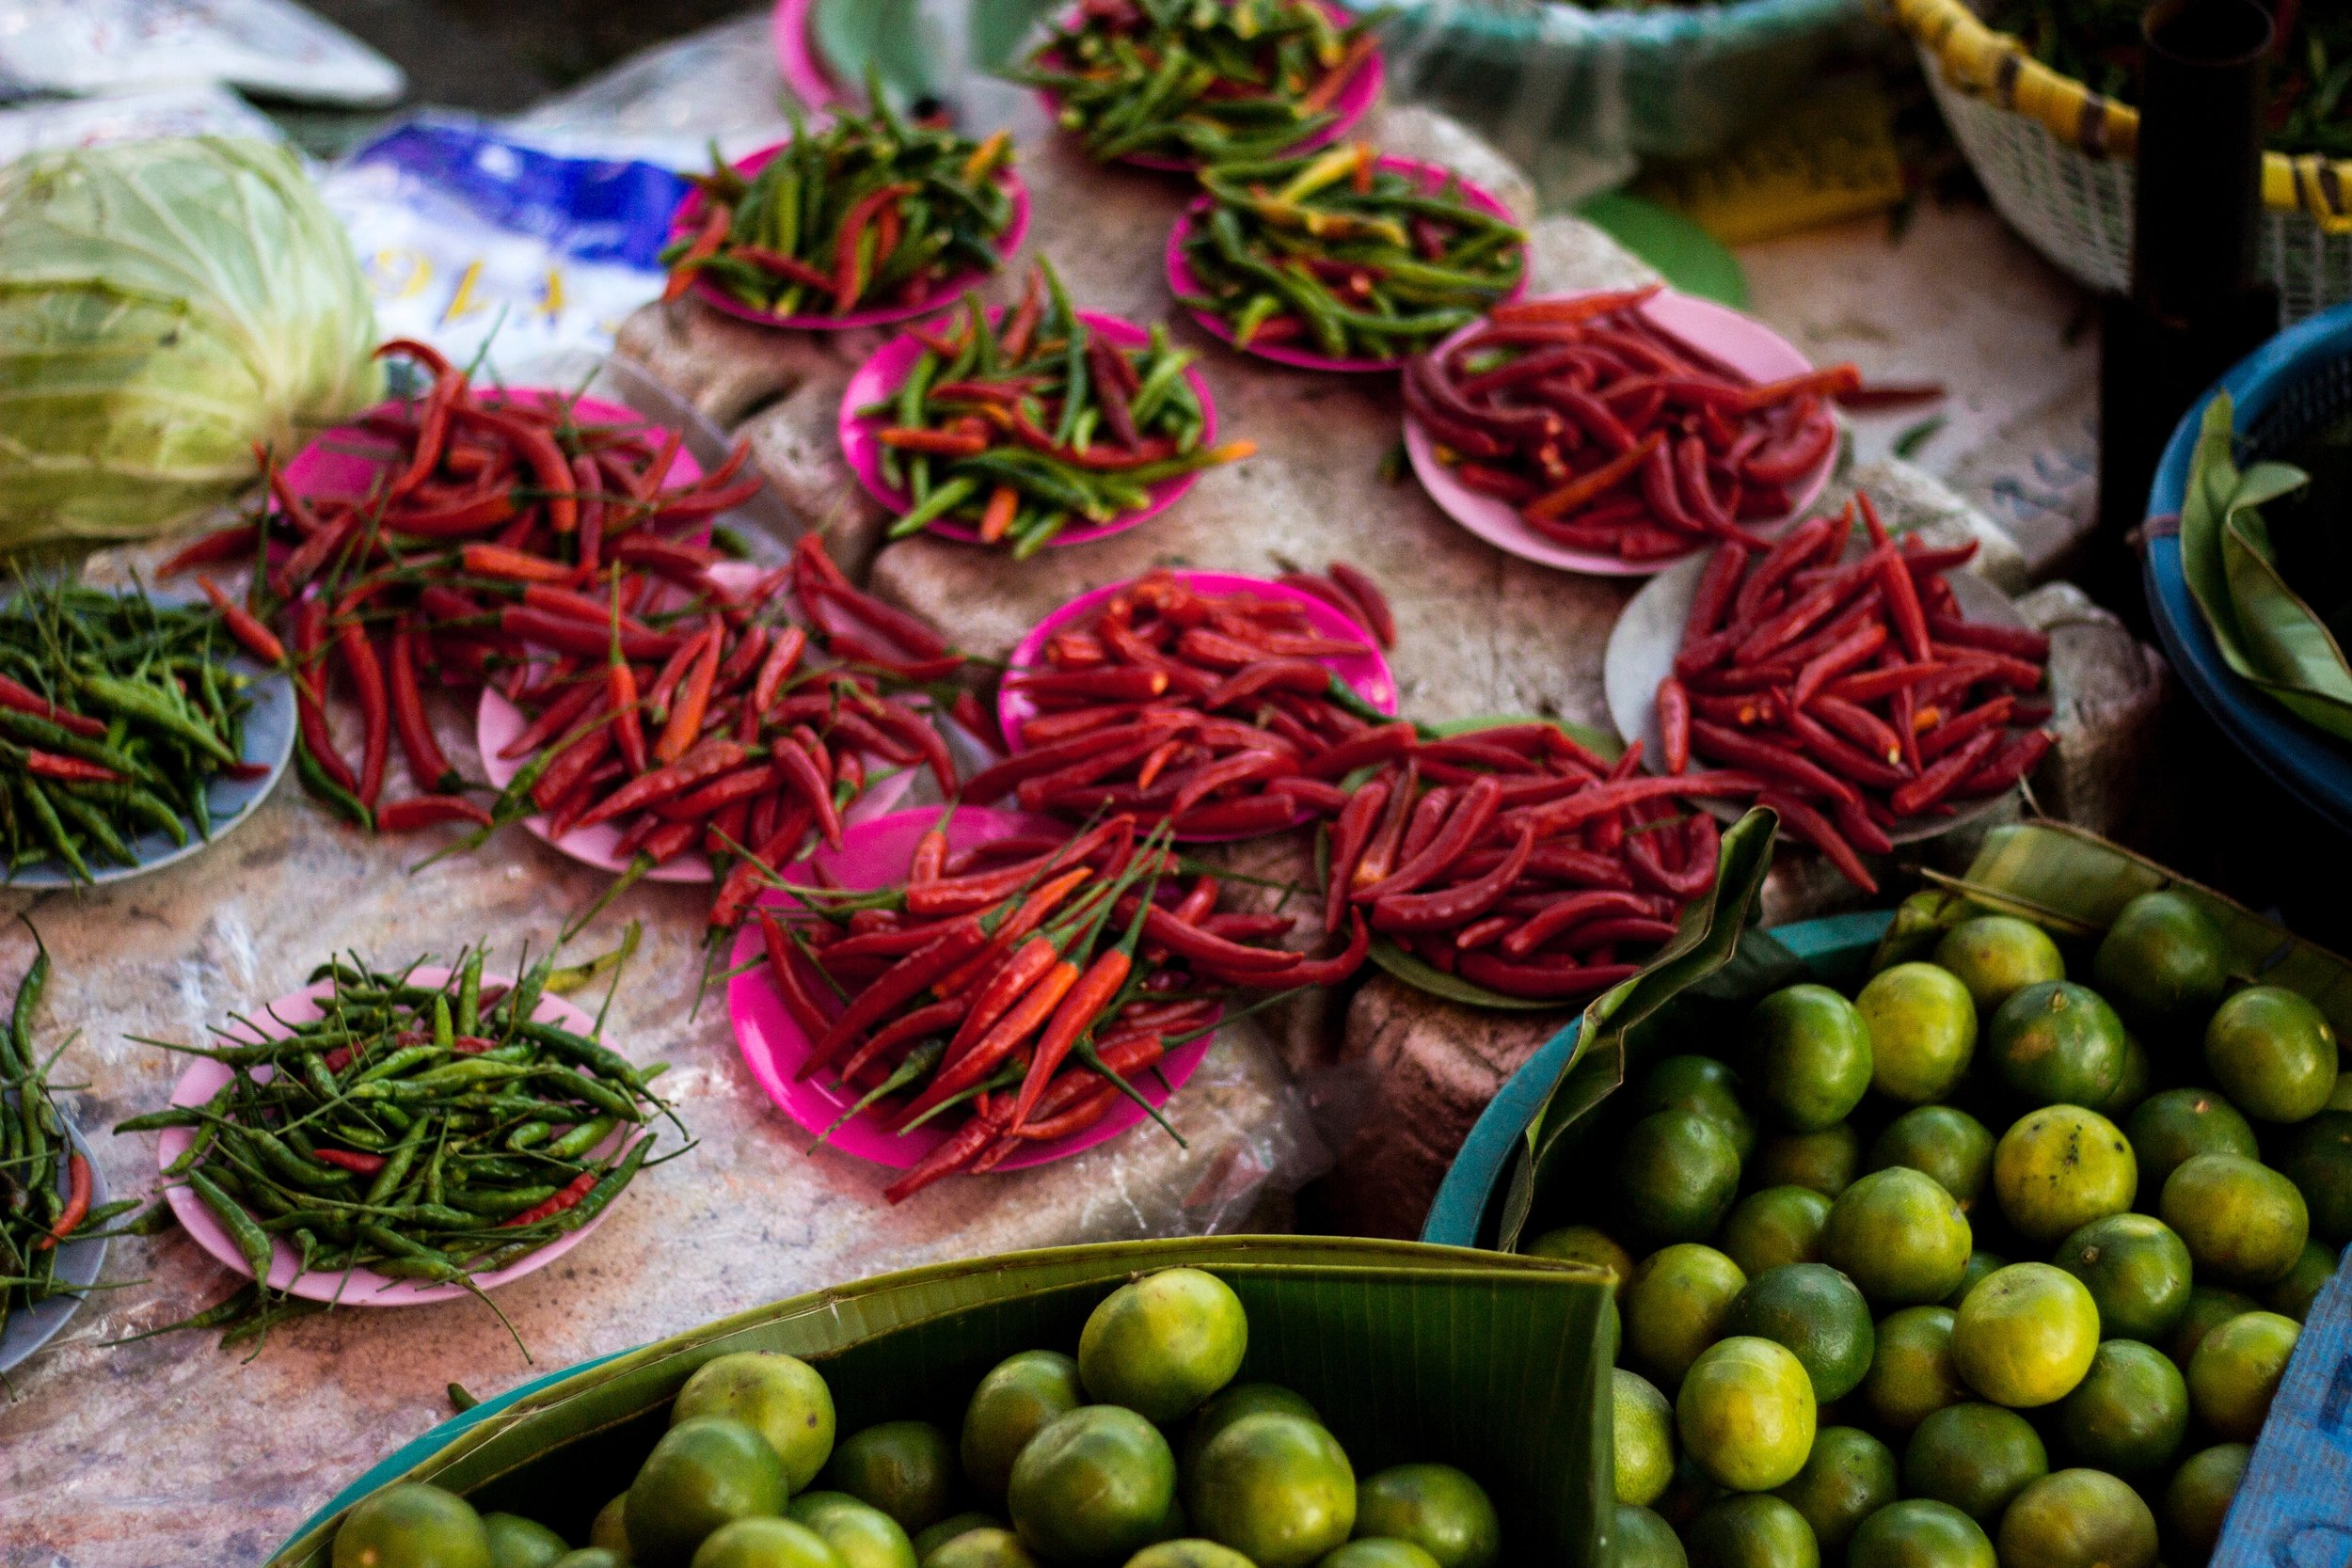 Spicy chiles